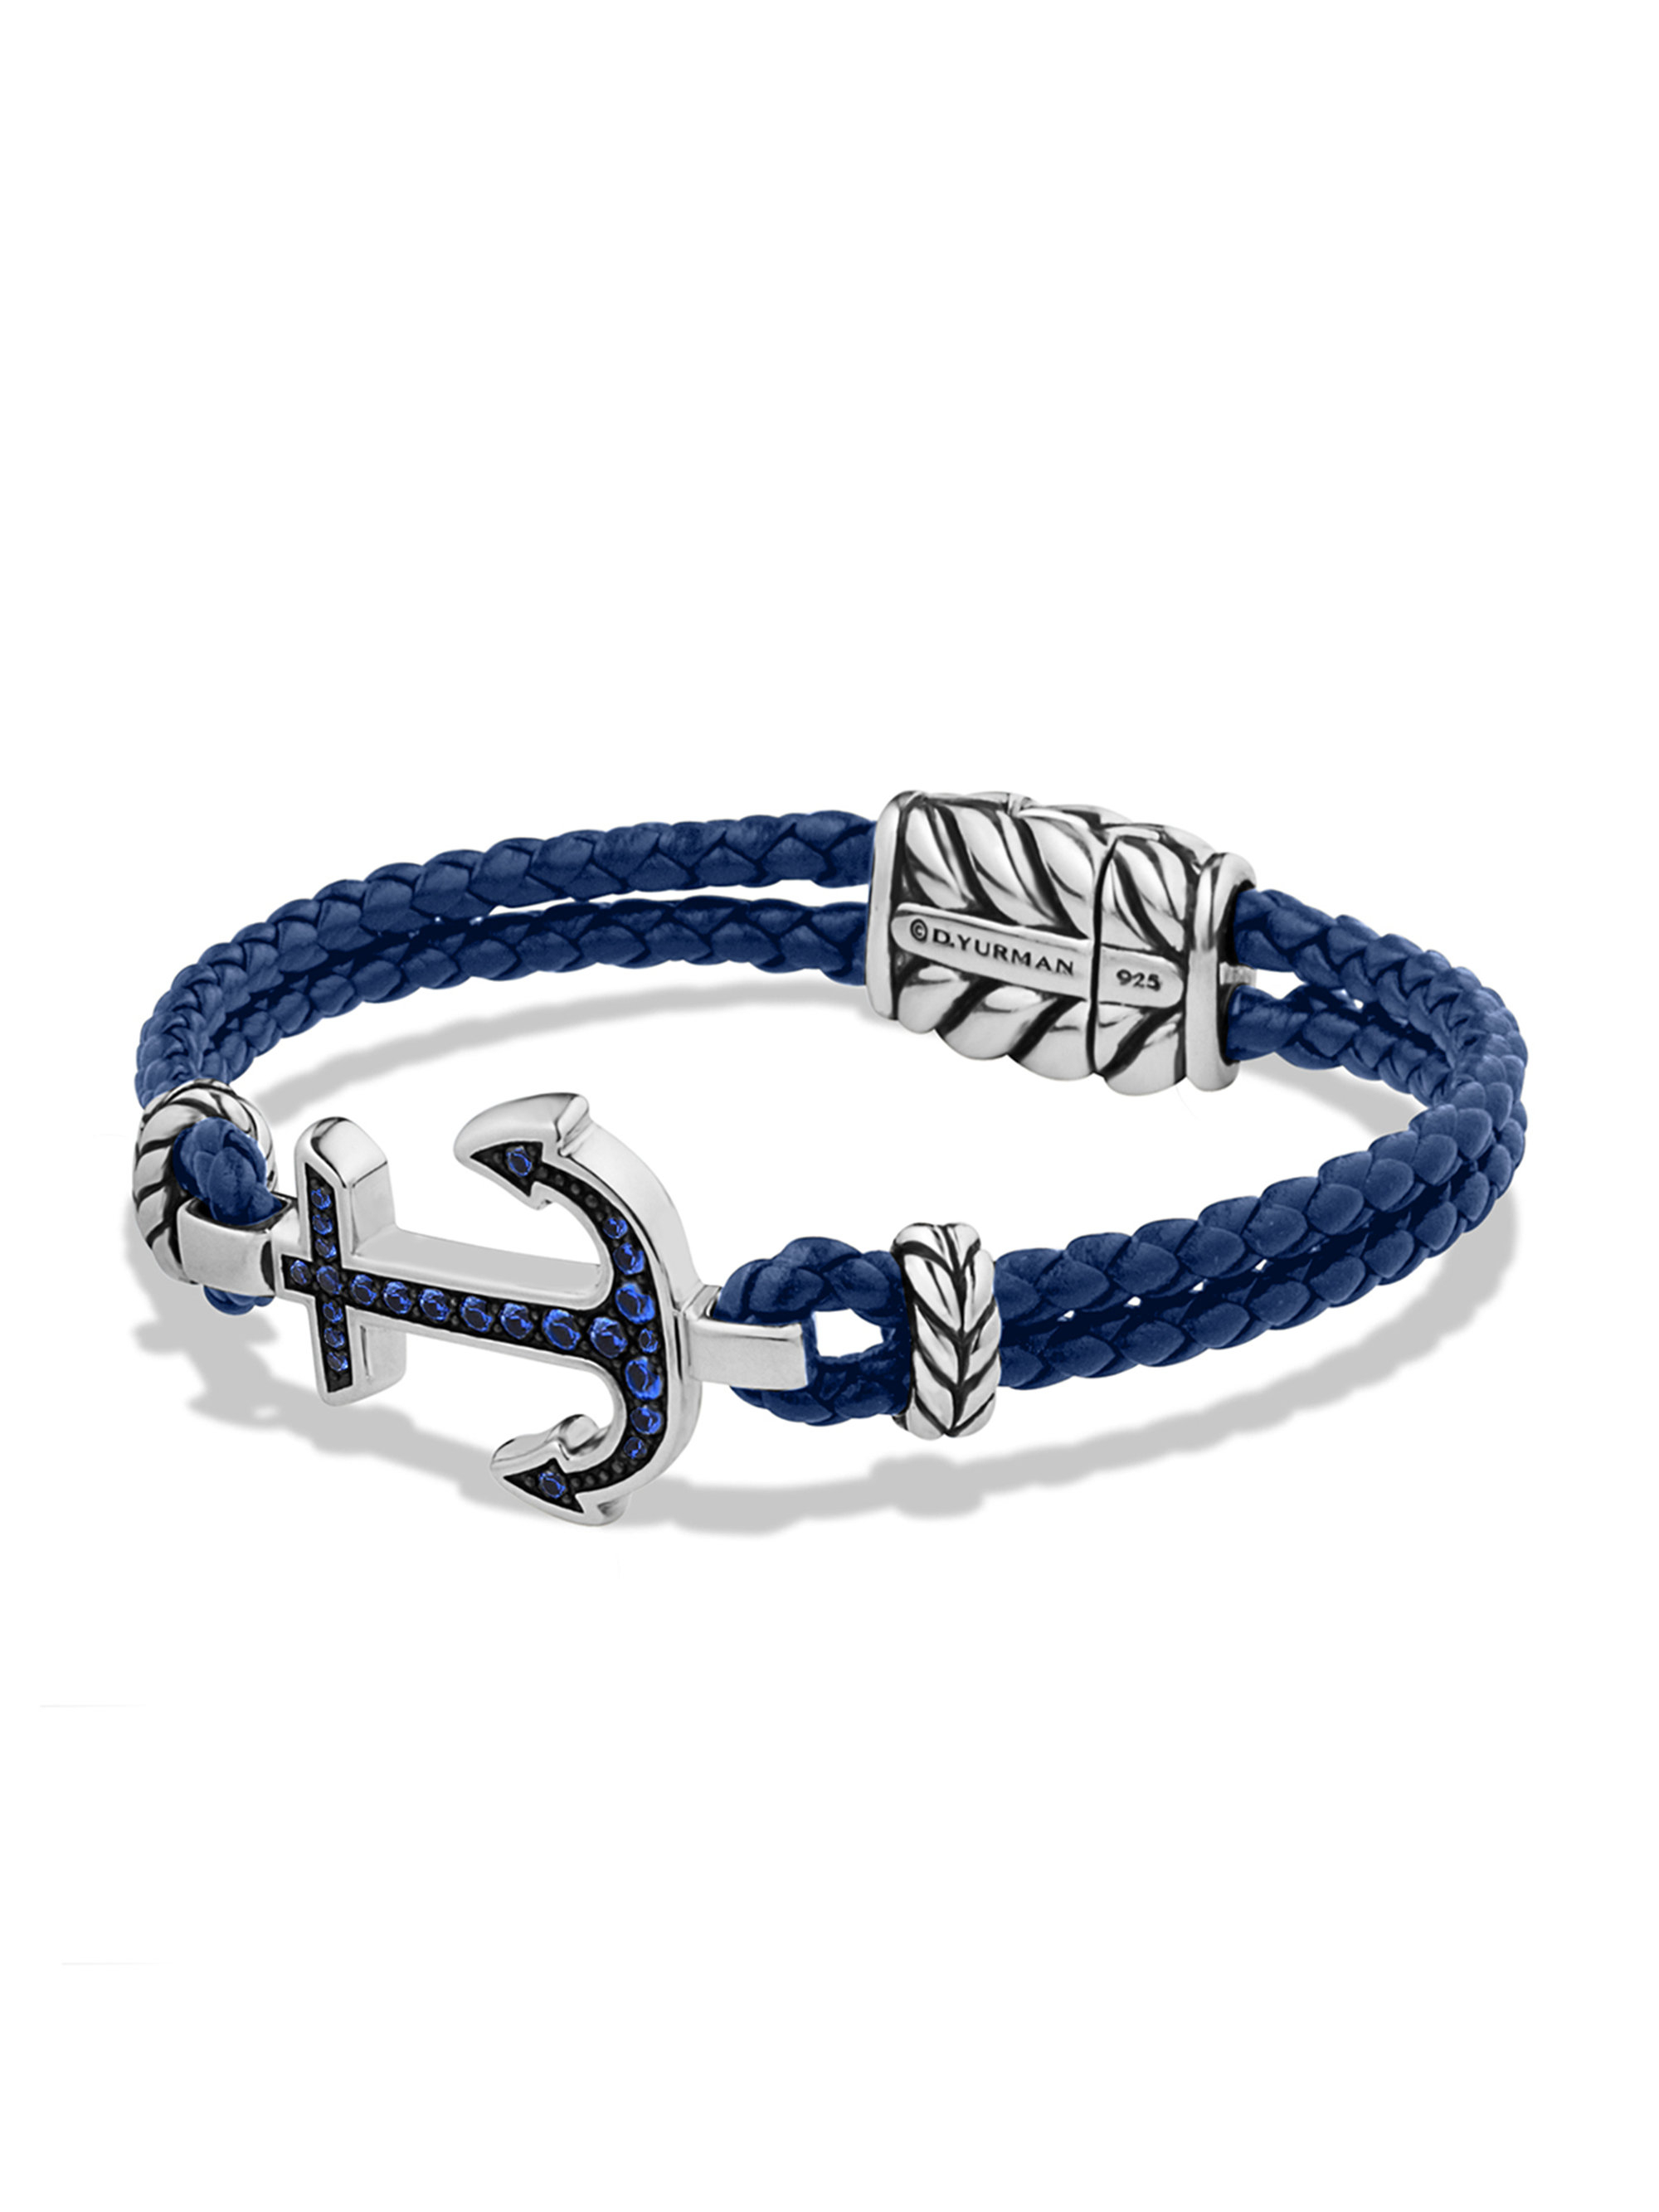 david yurman pav 201 anchor bracelet in blue for lyst